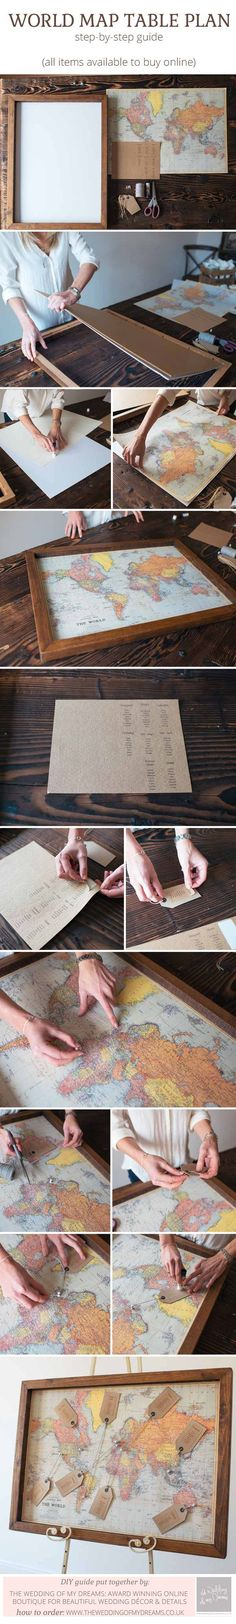 How to make a world map wedding table plan - step by step guide #travelwedding #weddingtableplan by @theweddimgomd